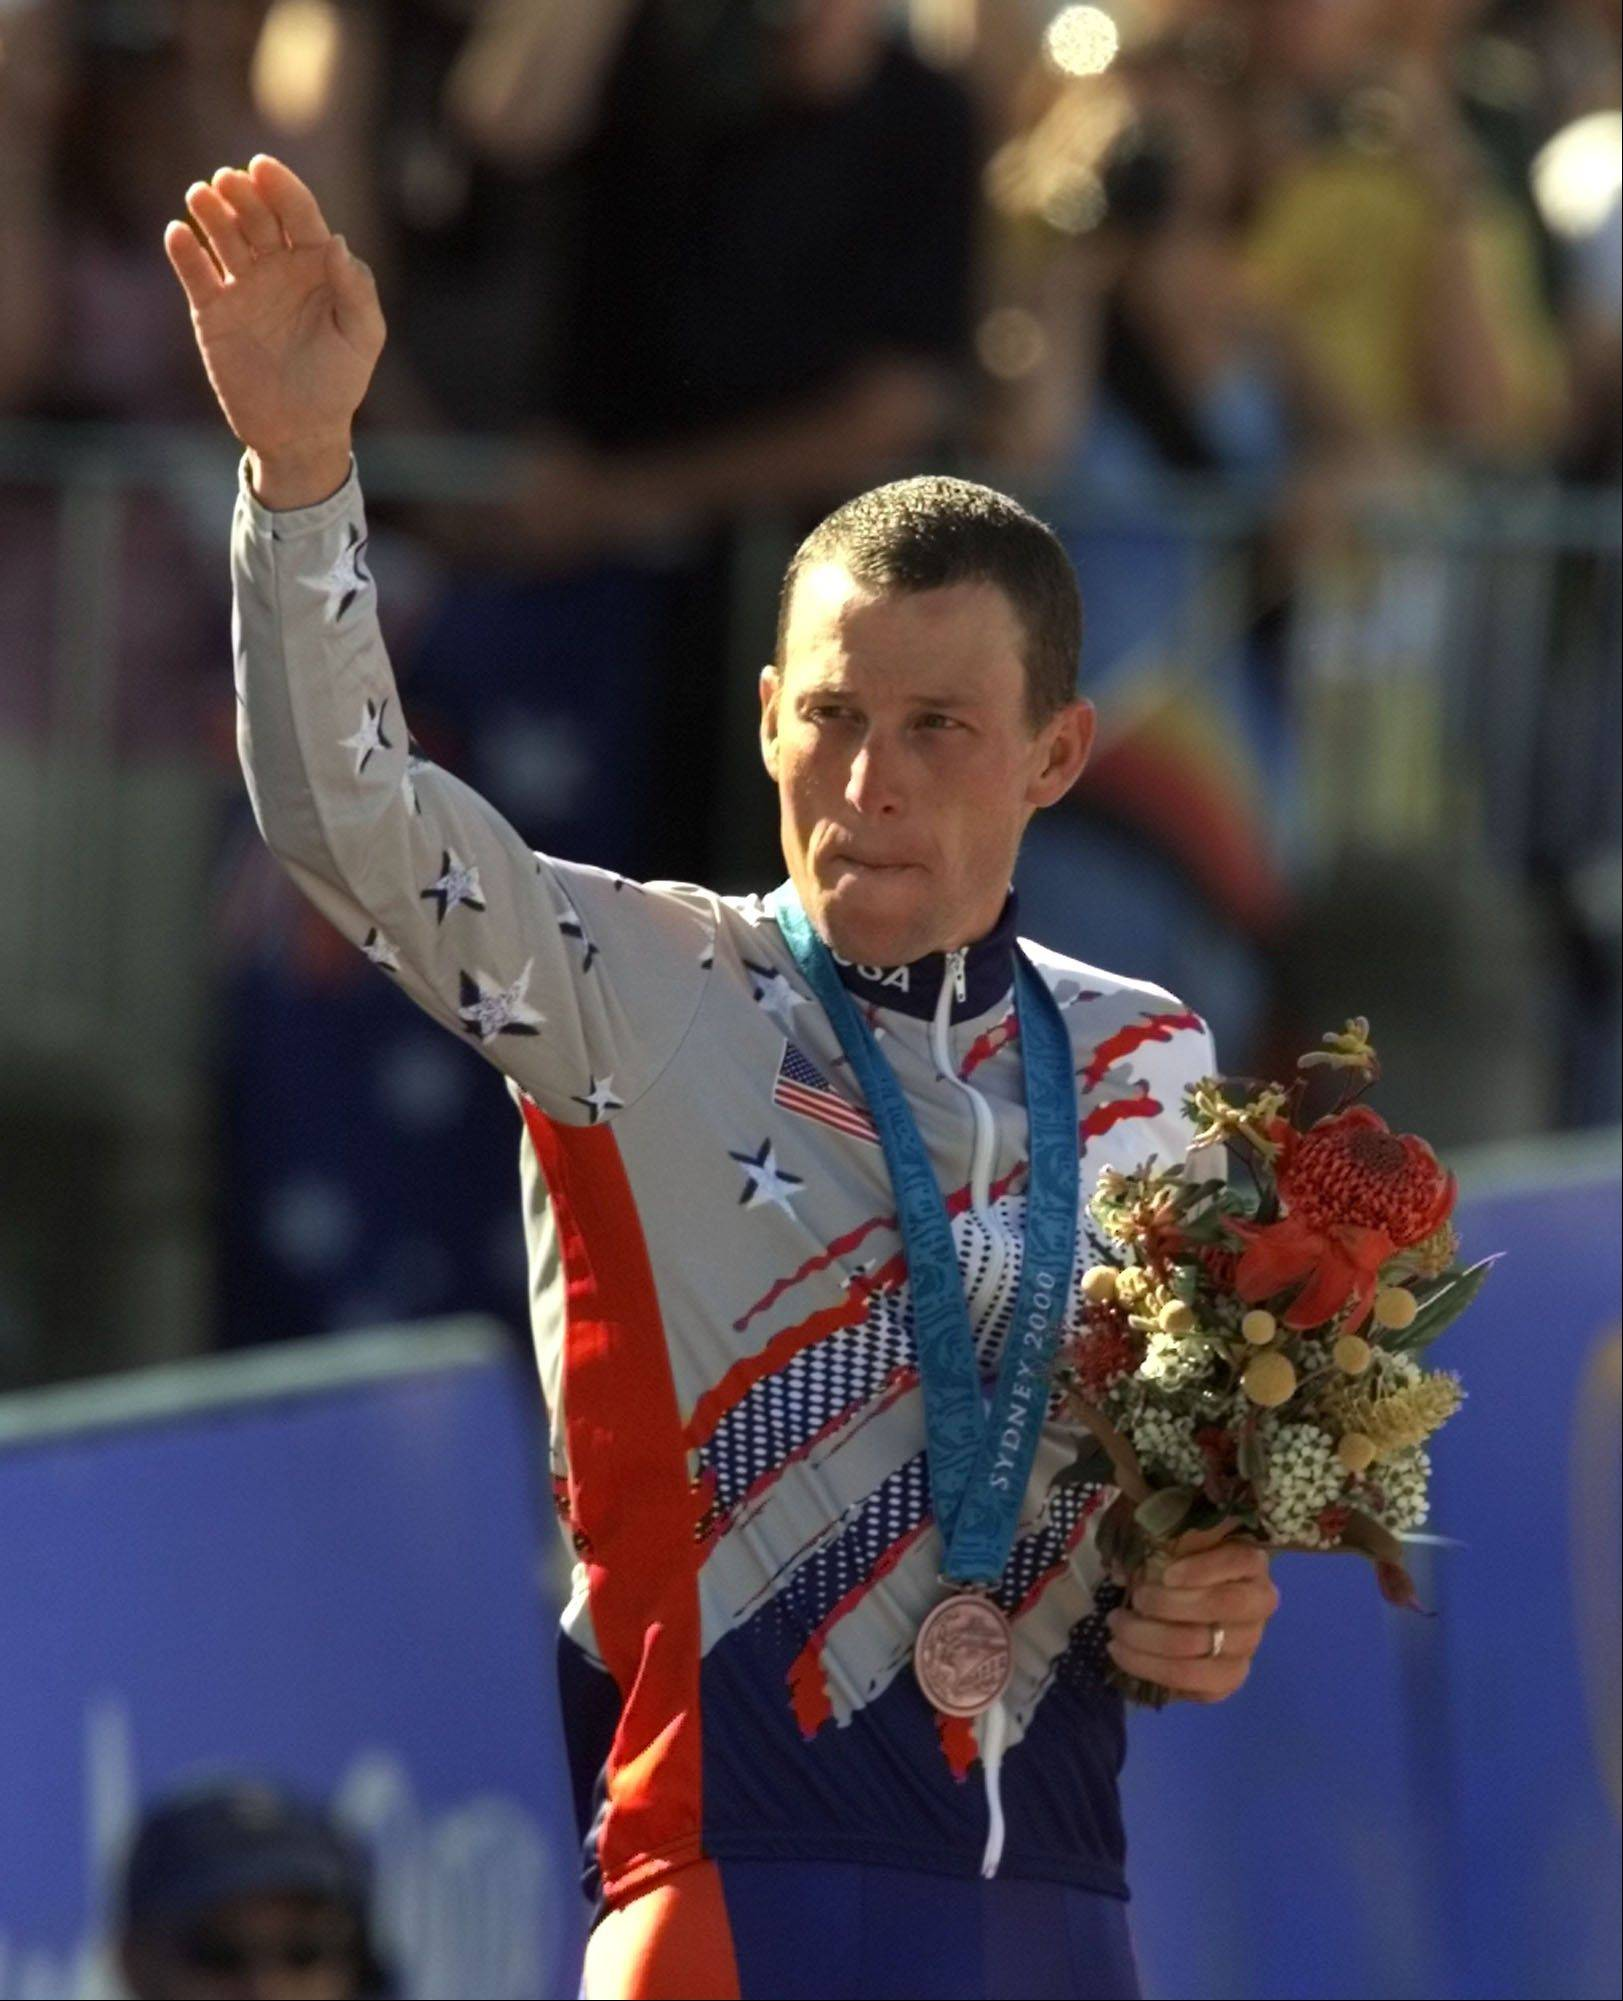 U.S. cyclist Lance Armstrong won the bronze medal in the men's individual time trial at the 2000 Summer Olympics in Sydney, Australia.